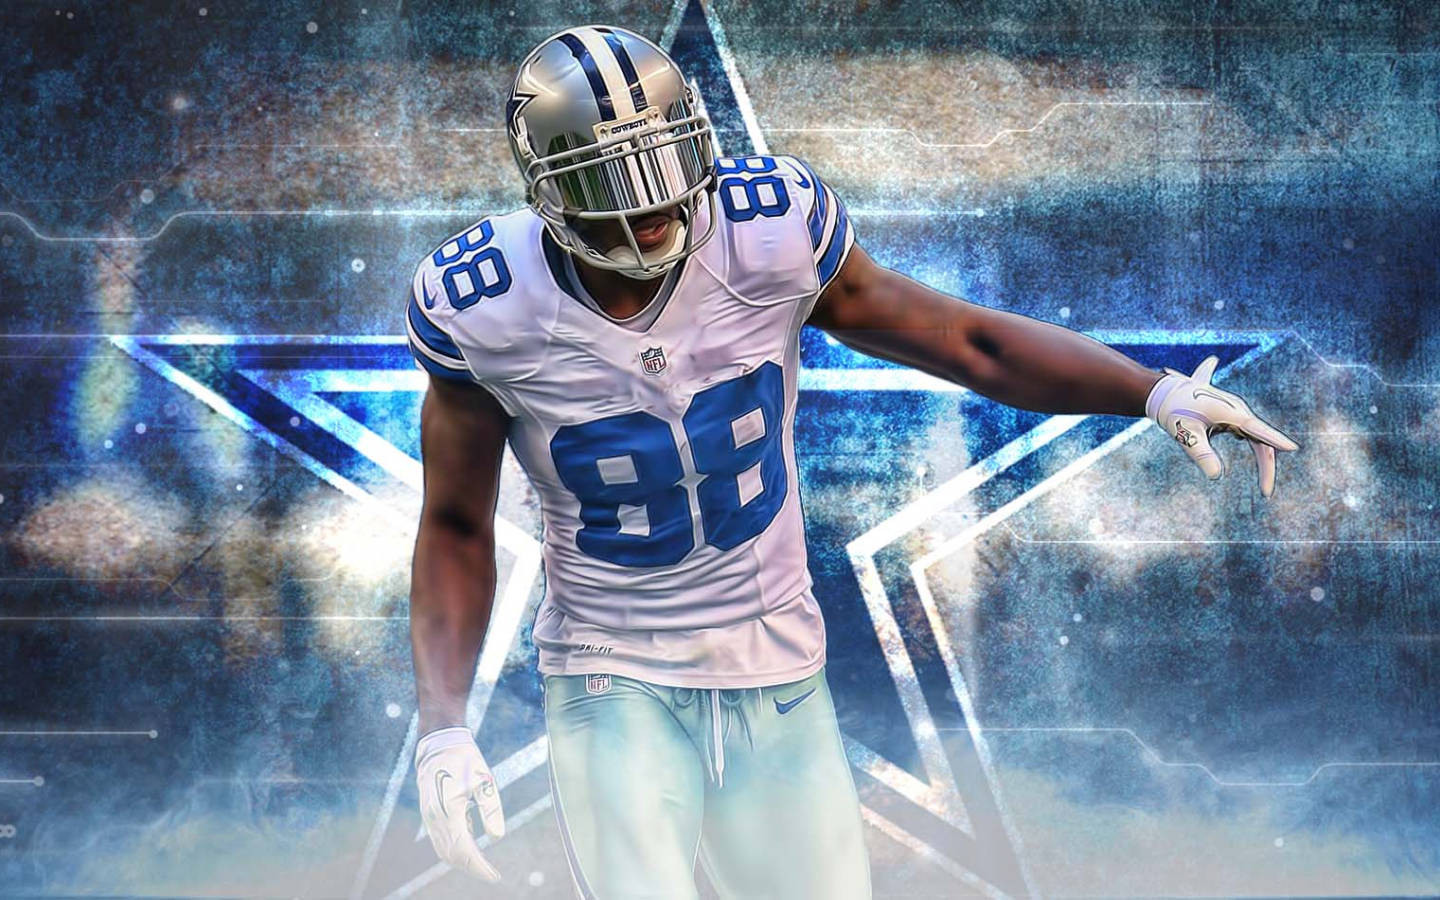 Free Download Dez Bryant Wallpaper 1600x950 For Your